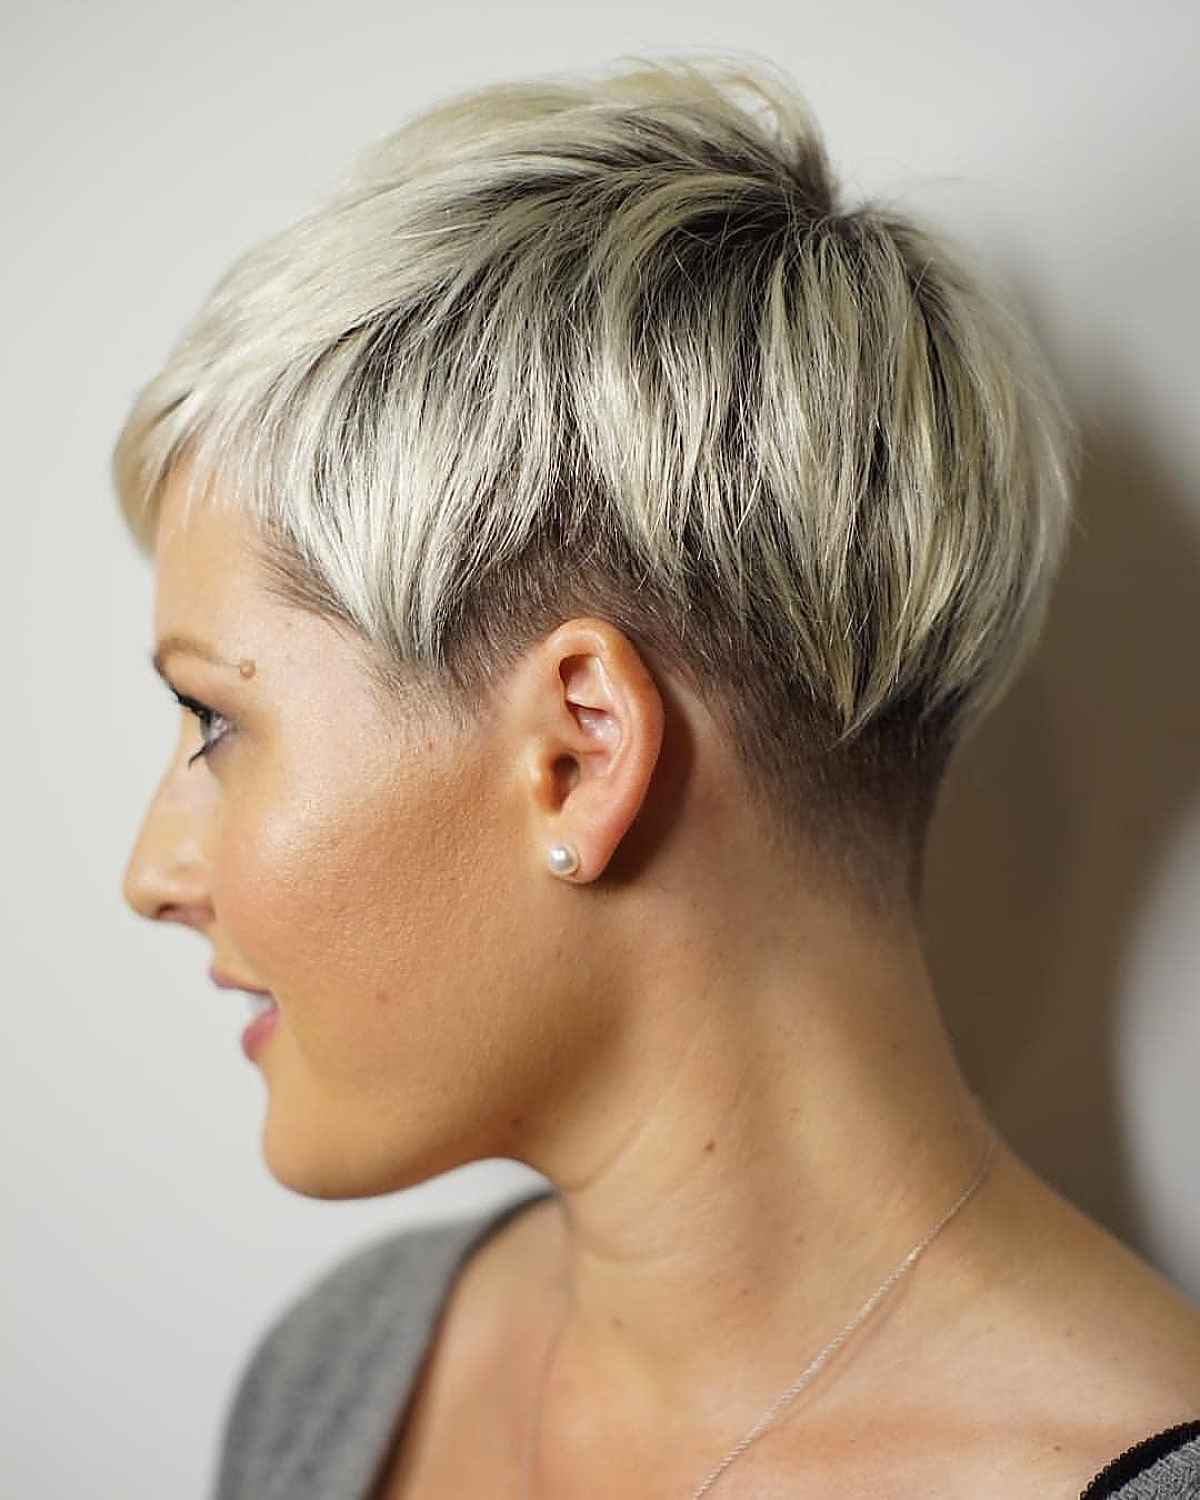 26 Very Short Pixie Haircuts for Confident Women